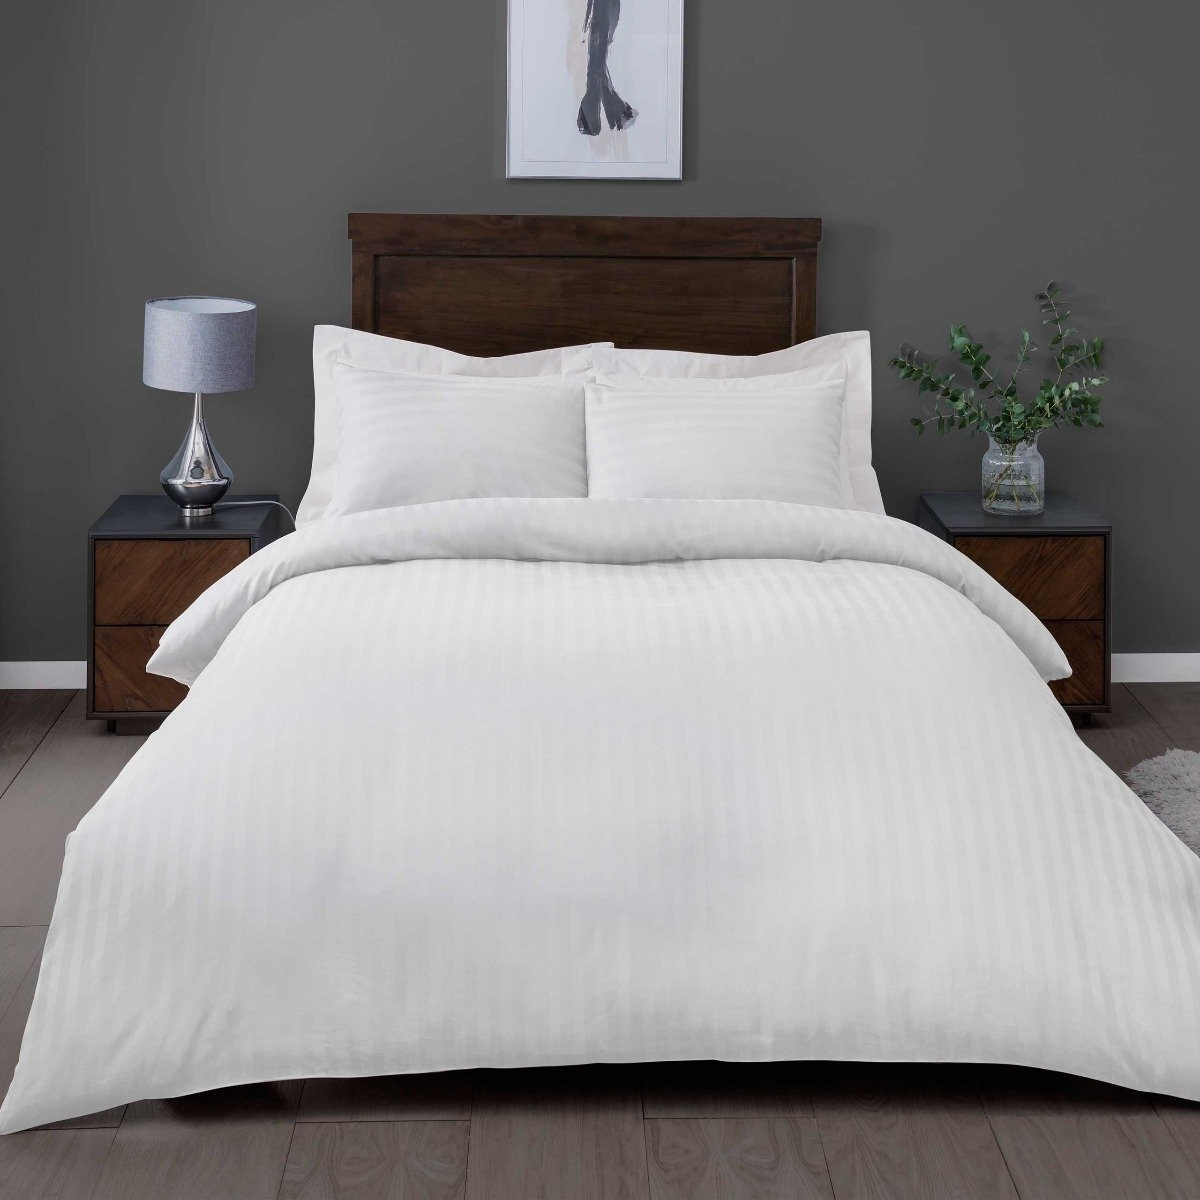 Satin Stripe White Bedding - 225 Thread Count Duvet Cover and Pillowcase Set